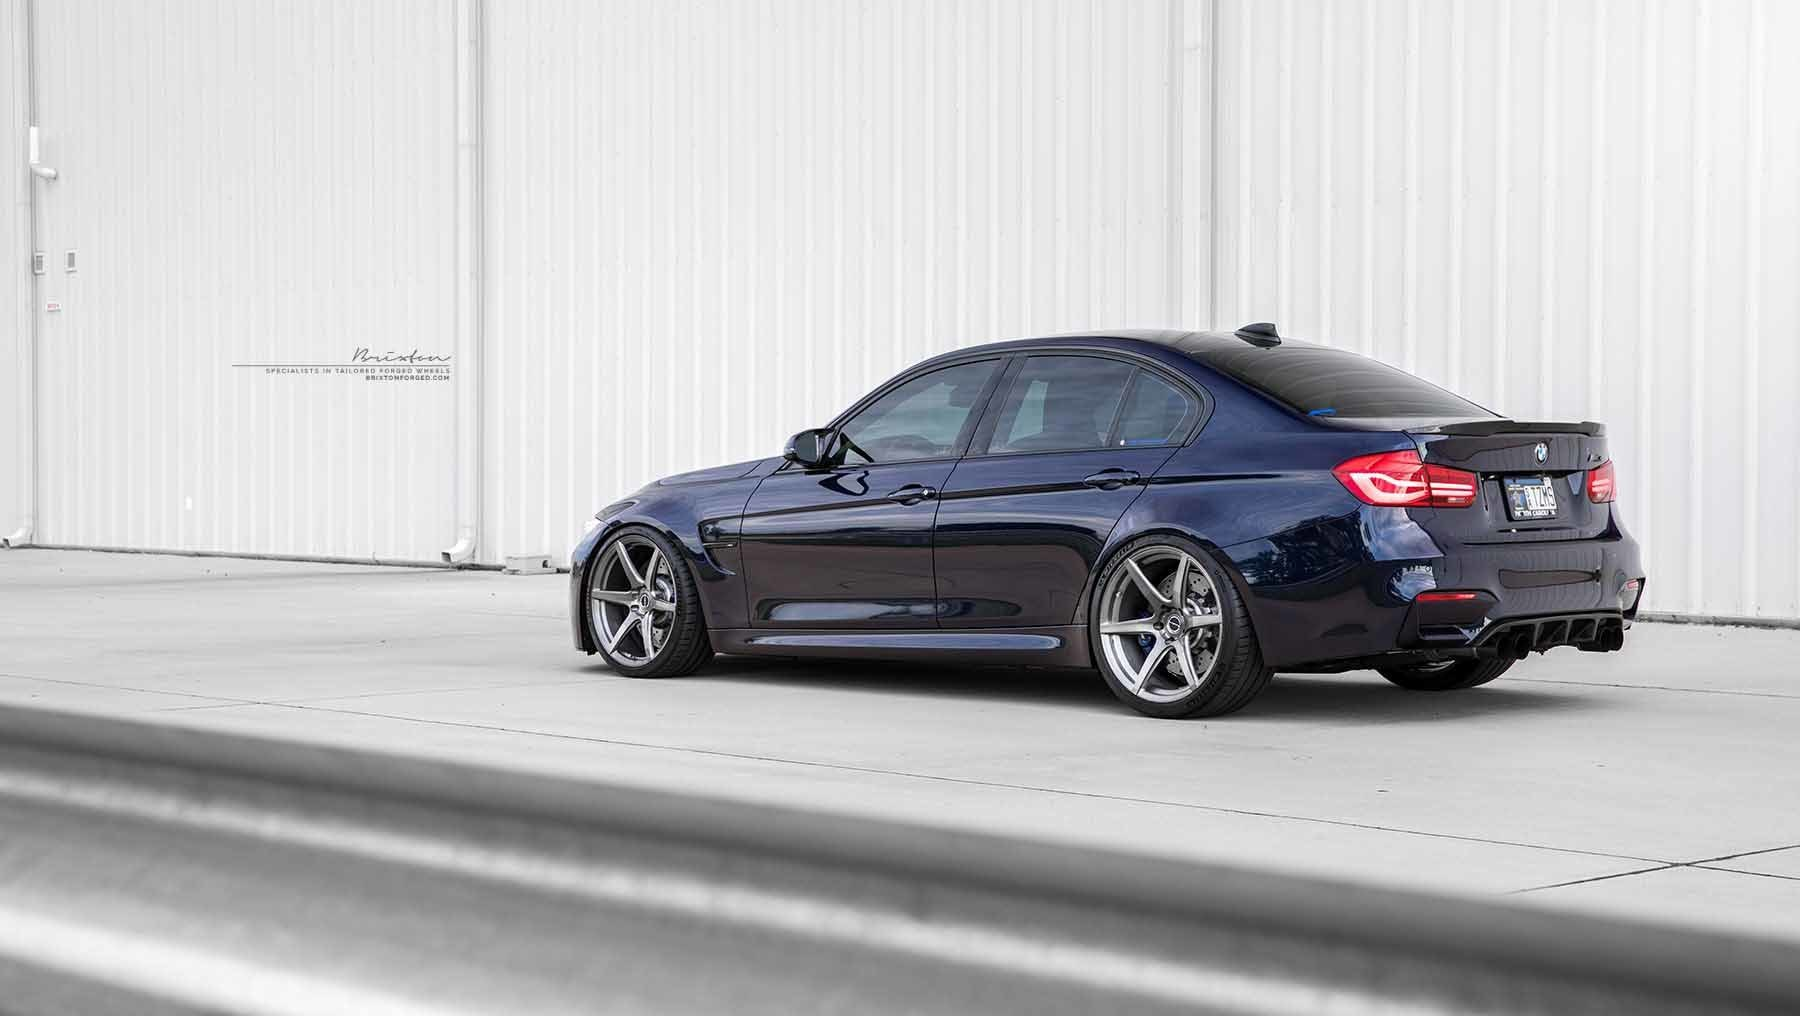 images-products-1-2895-232975183-tanzanite-blue-m3-f80-bmw-brixton-forged-wheels-s60-ultrasport-brushed-double-tint-concave-1-pie.jpg